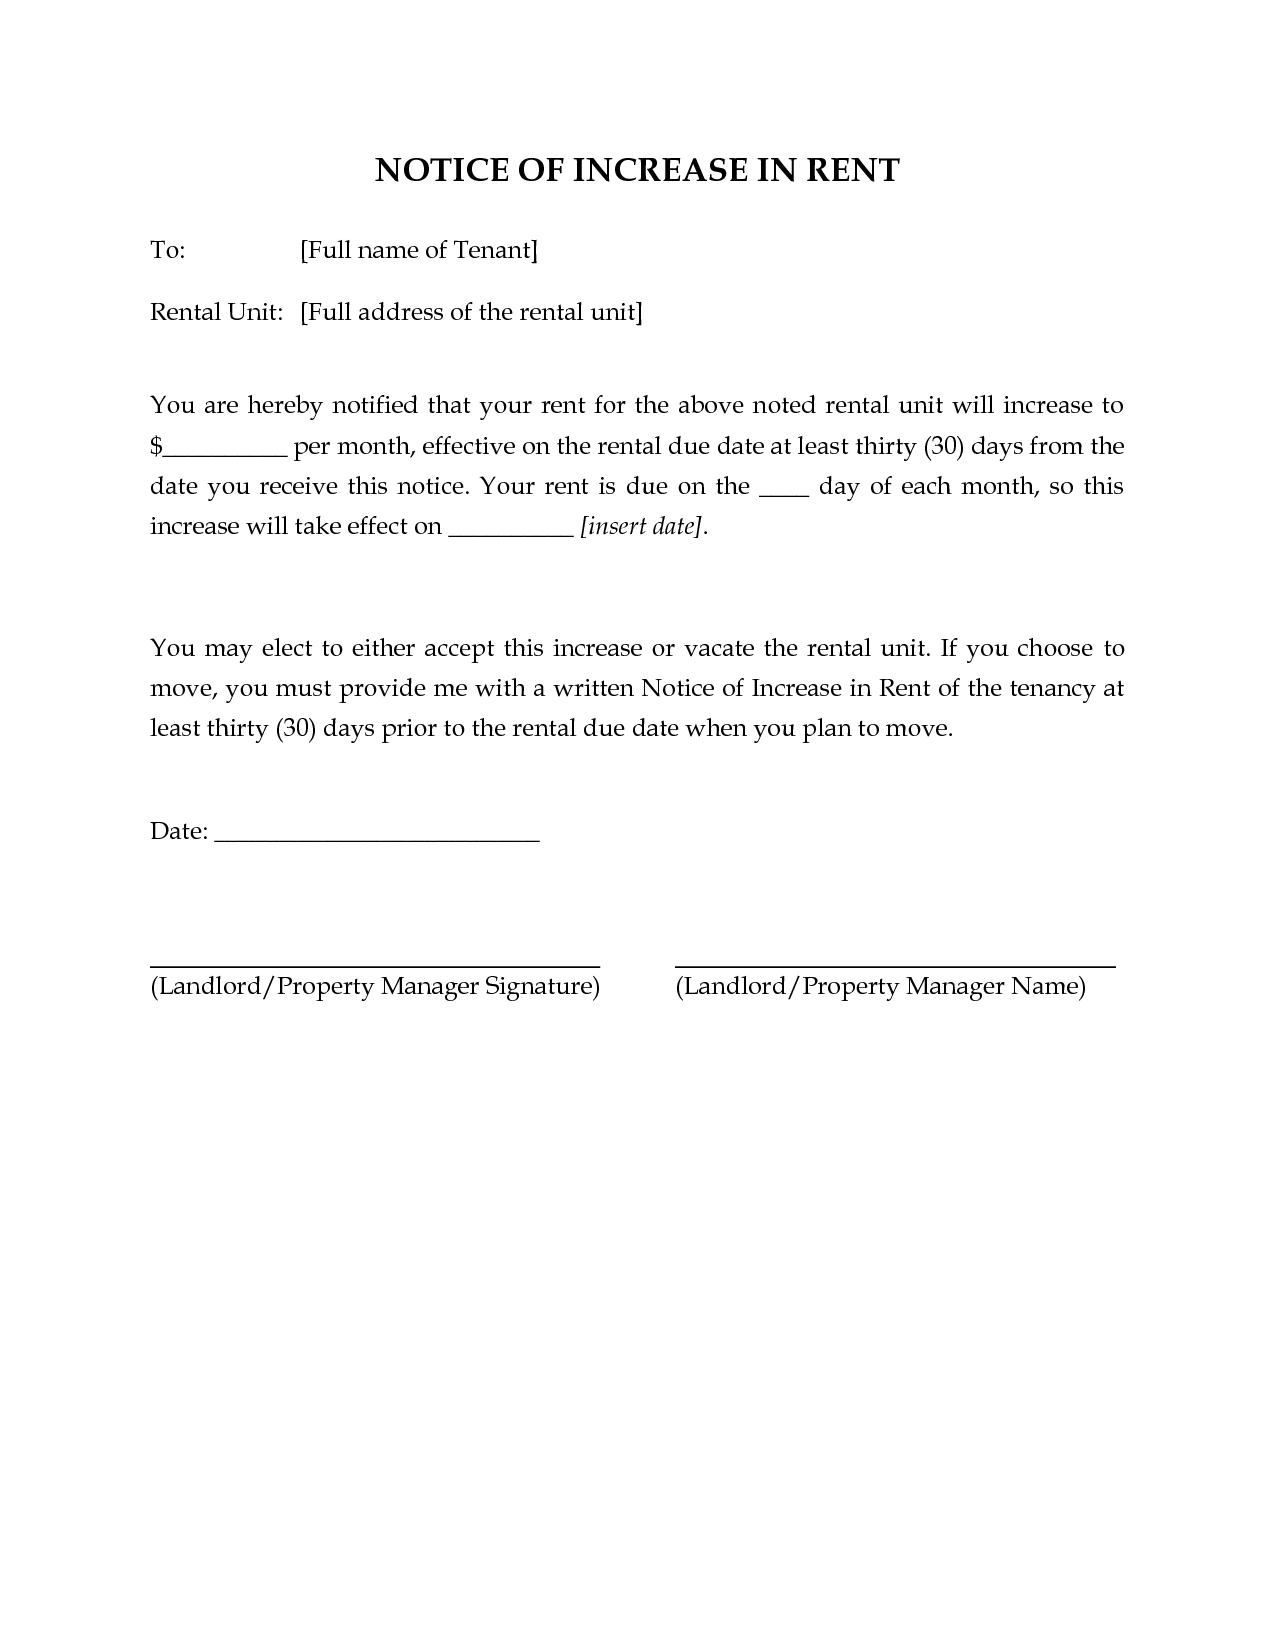 rent-increase-letter-to-tenant-template Storage Increase Letter Template Or Examples on salary spreadsheet, storage rate, basic pay raise, communicating compensation, letter recommendation for pay, excel payroll, free salary, for wage,